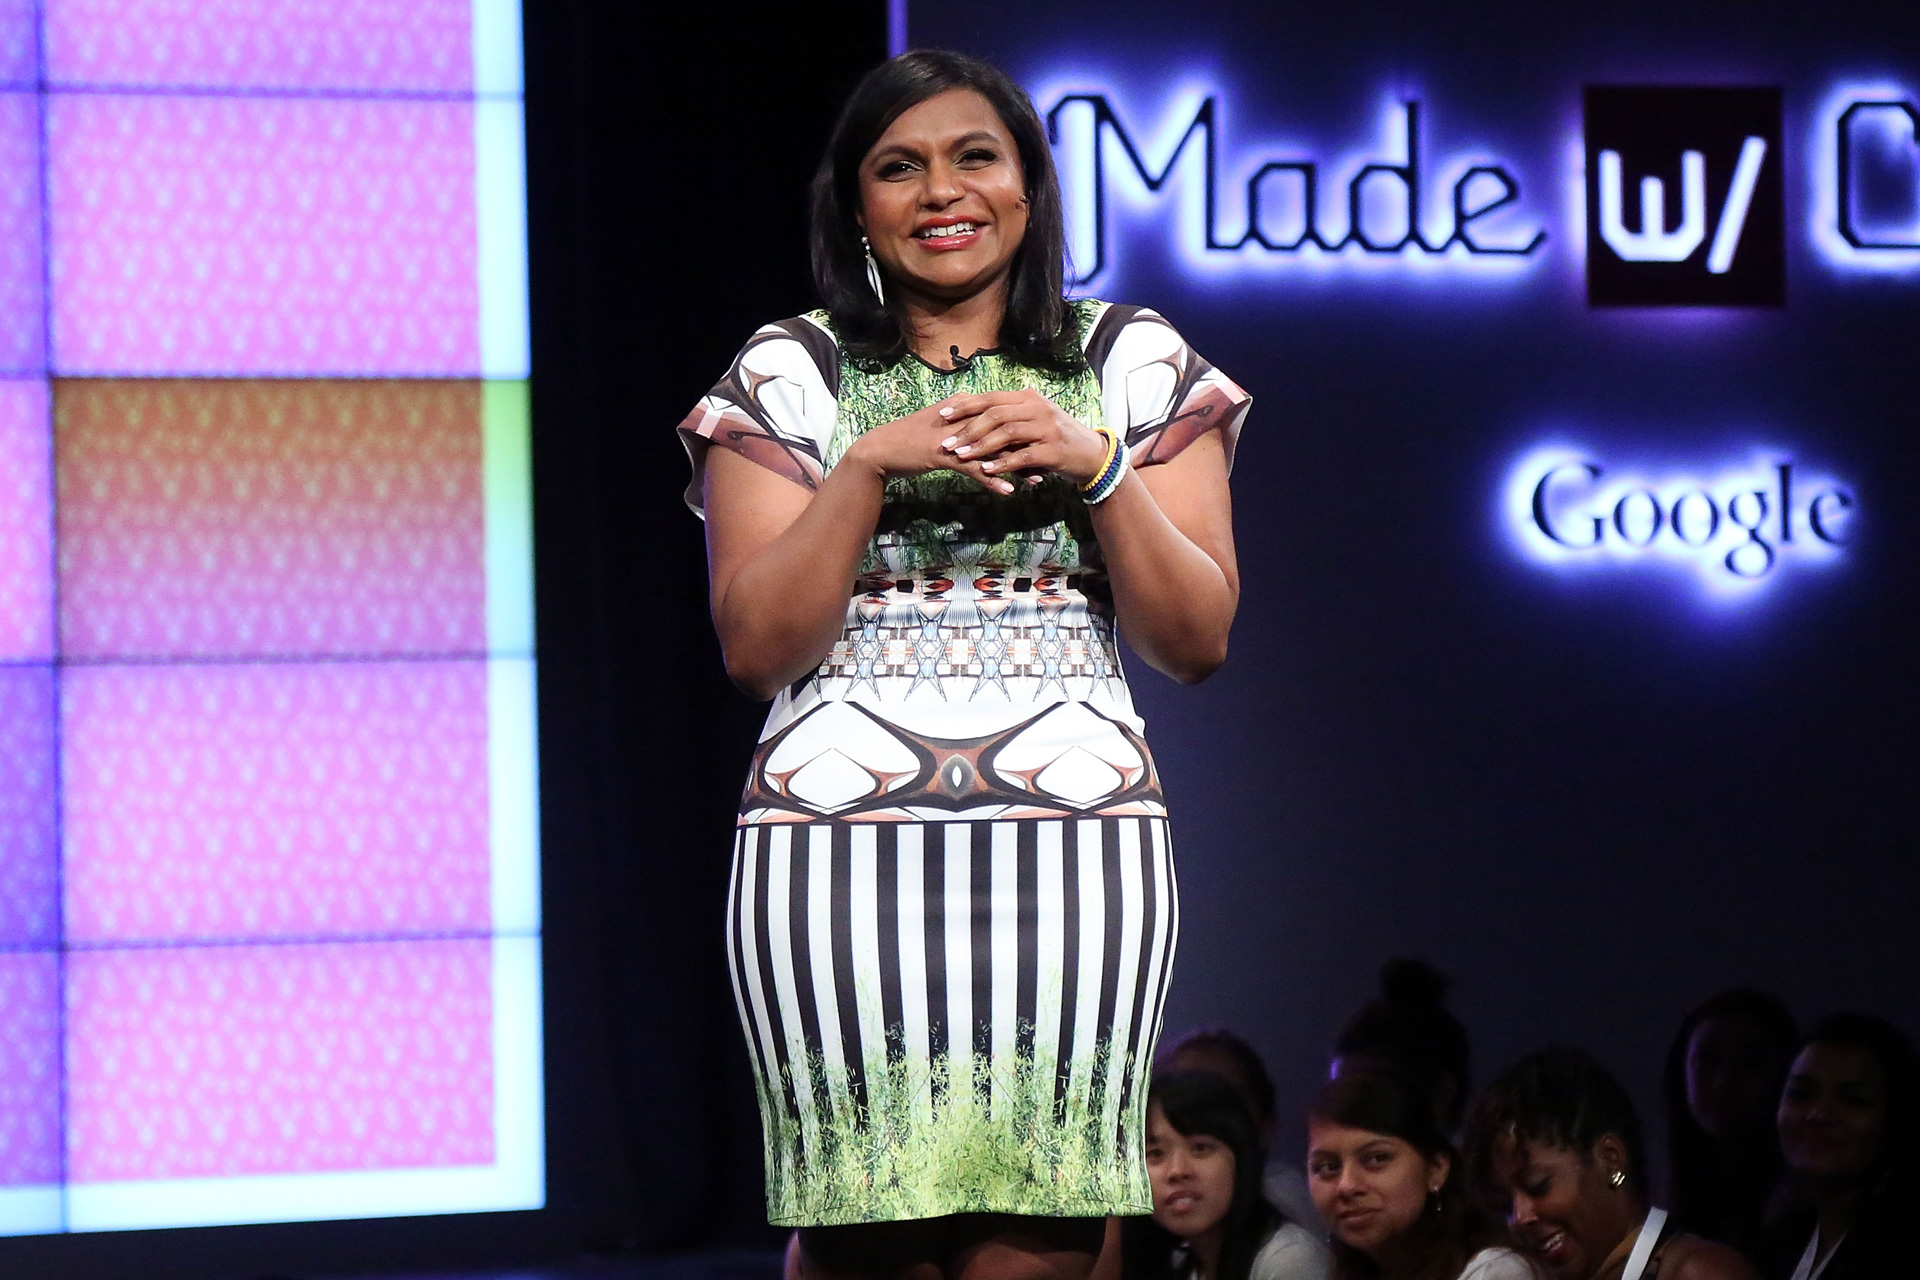 Mindy Kaling at Made with Code event